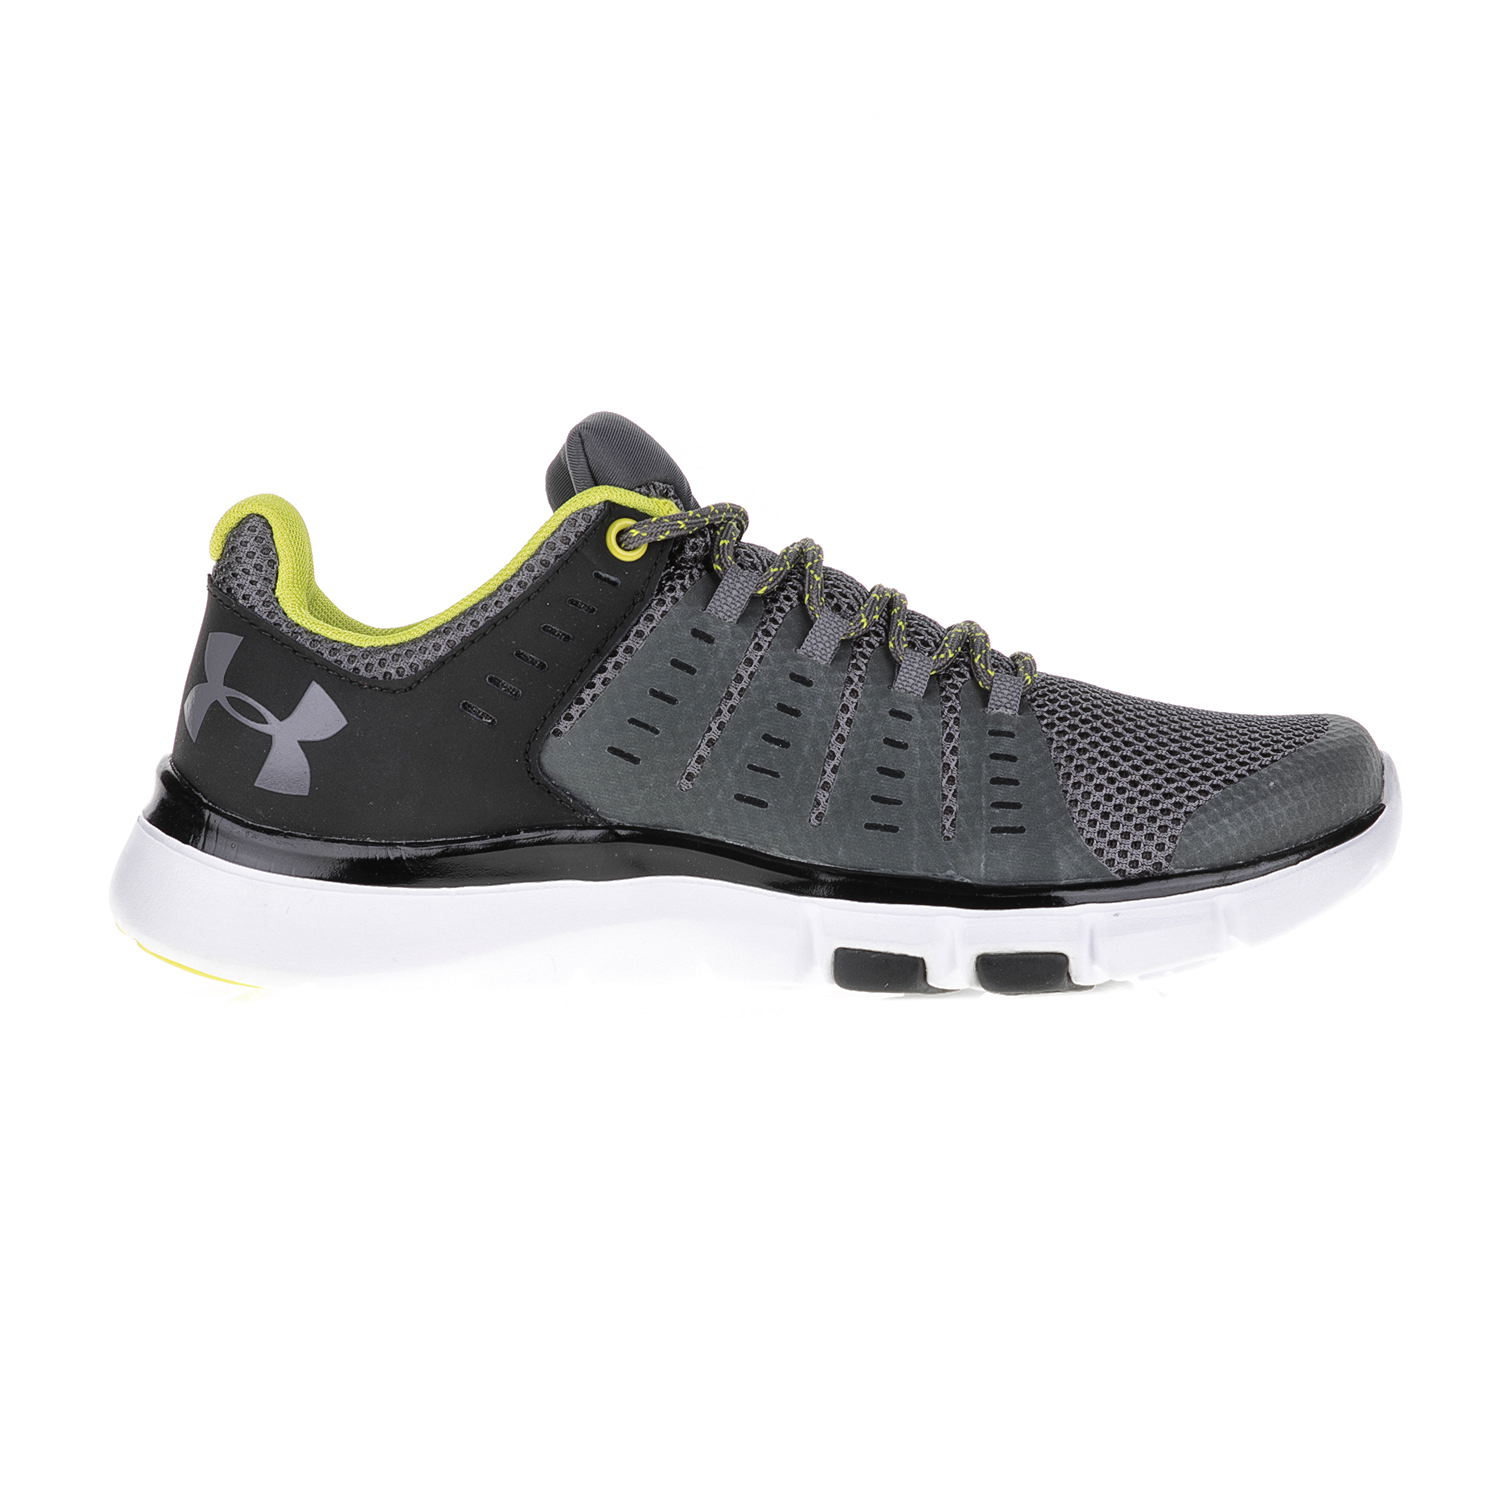 UNDER ARMOUR – Γυναικεία αθλητικά παπούτσια UNDER ARMOUR MICRO G LIMITLESS TR 2 γκρι